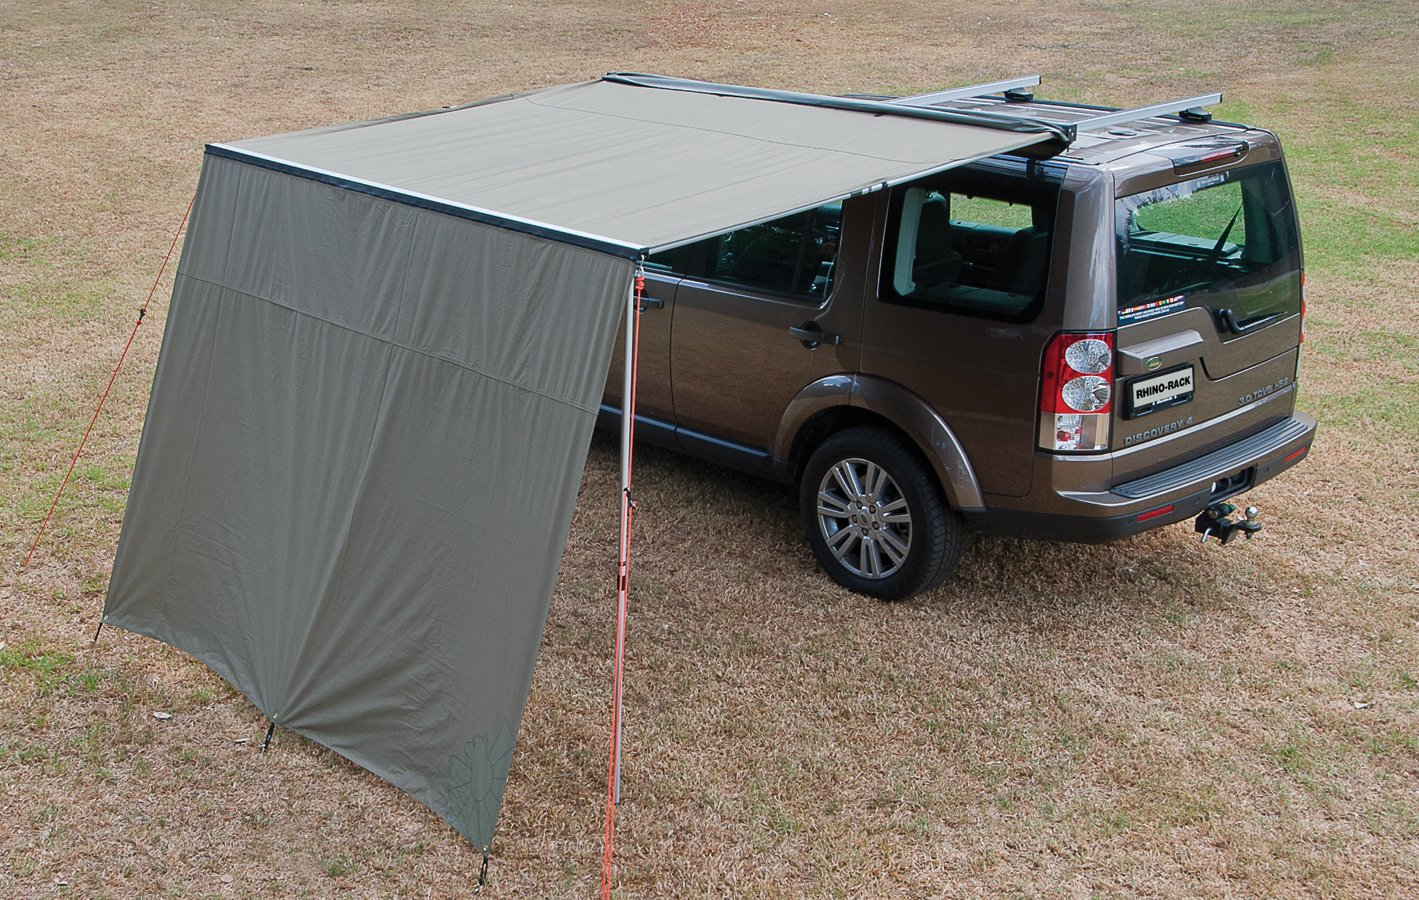 Awnings For Cars : Rhino rack foxwing canopy car awning